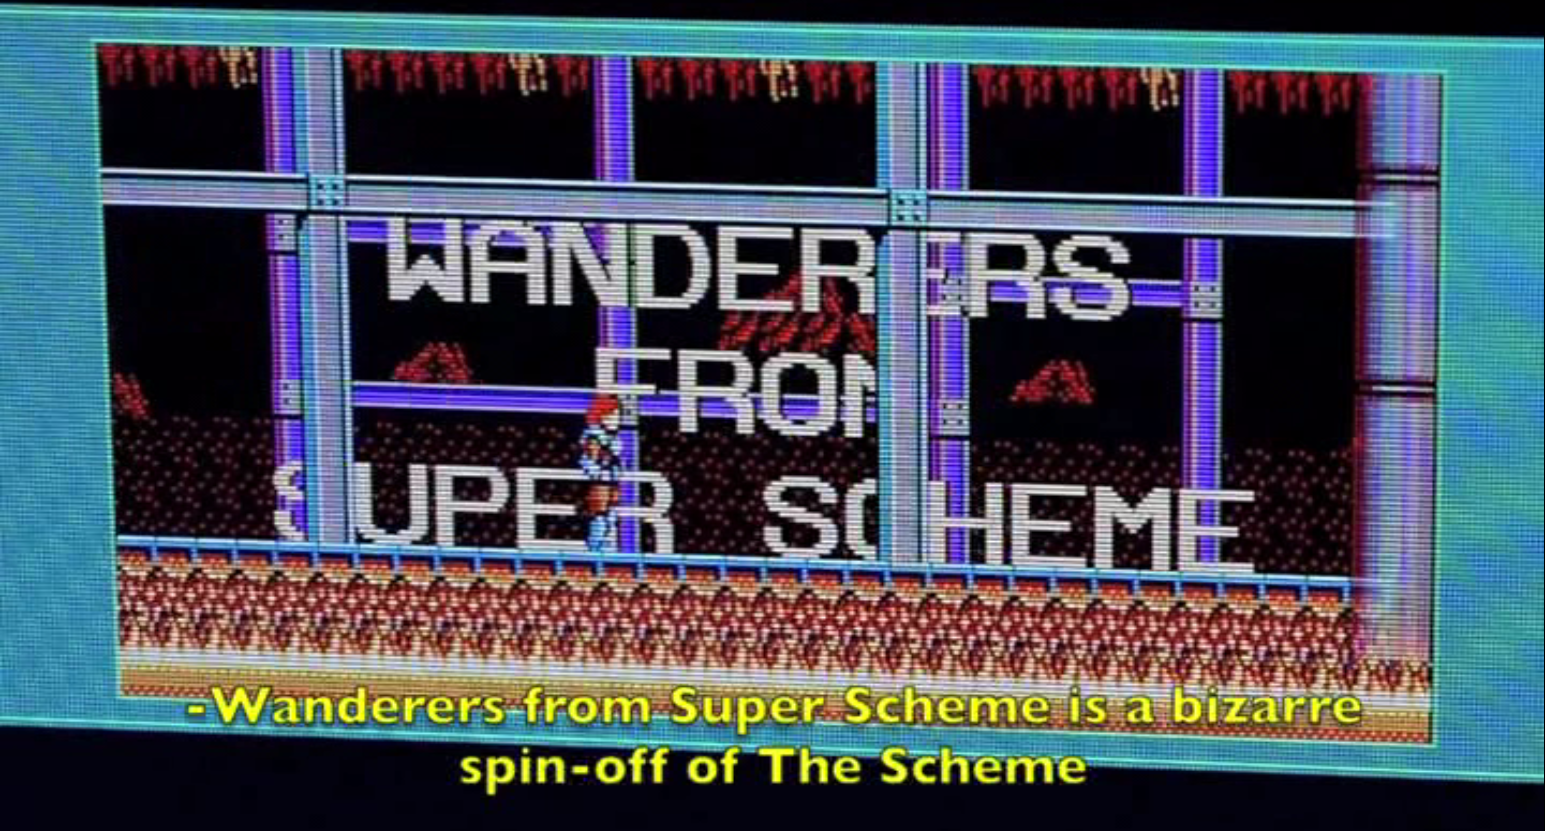 Wanderers From Super Scheme